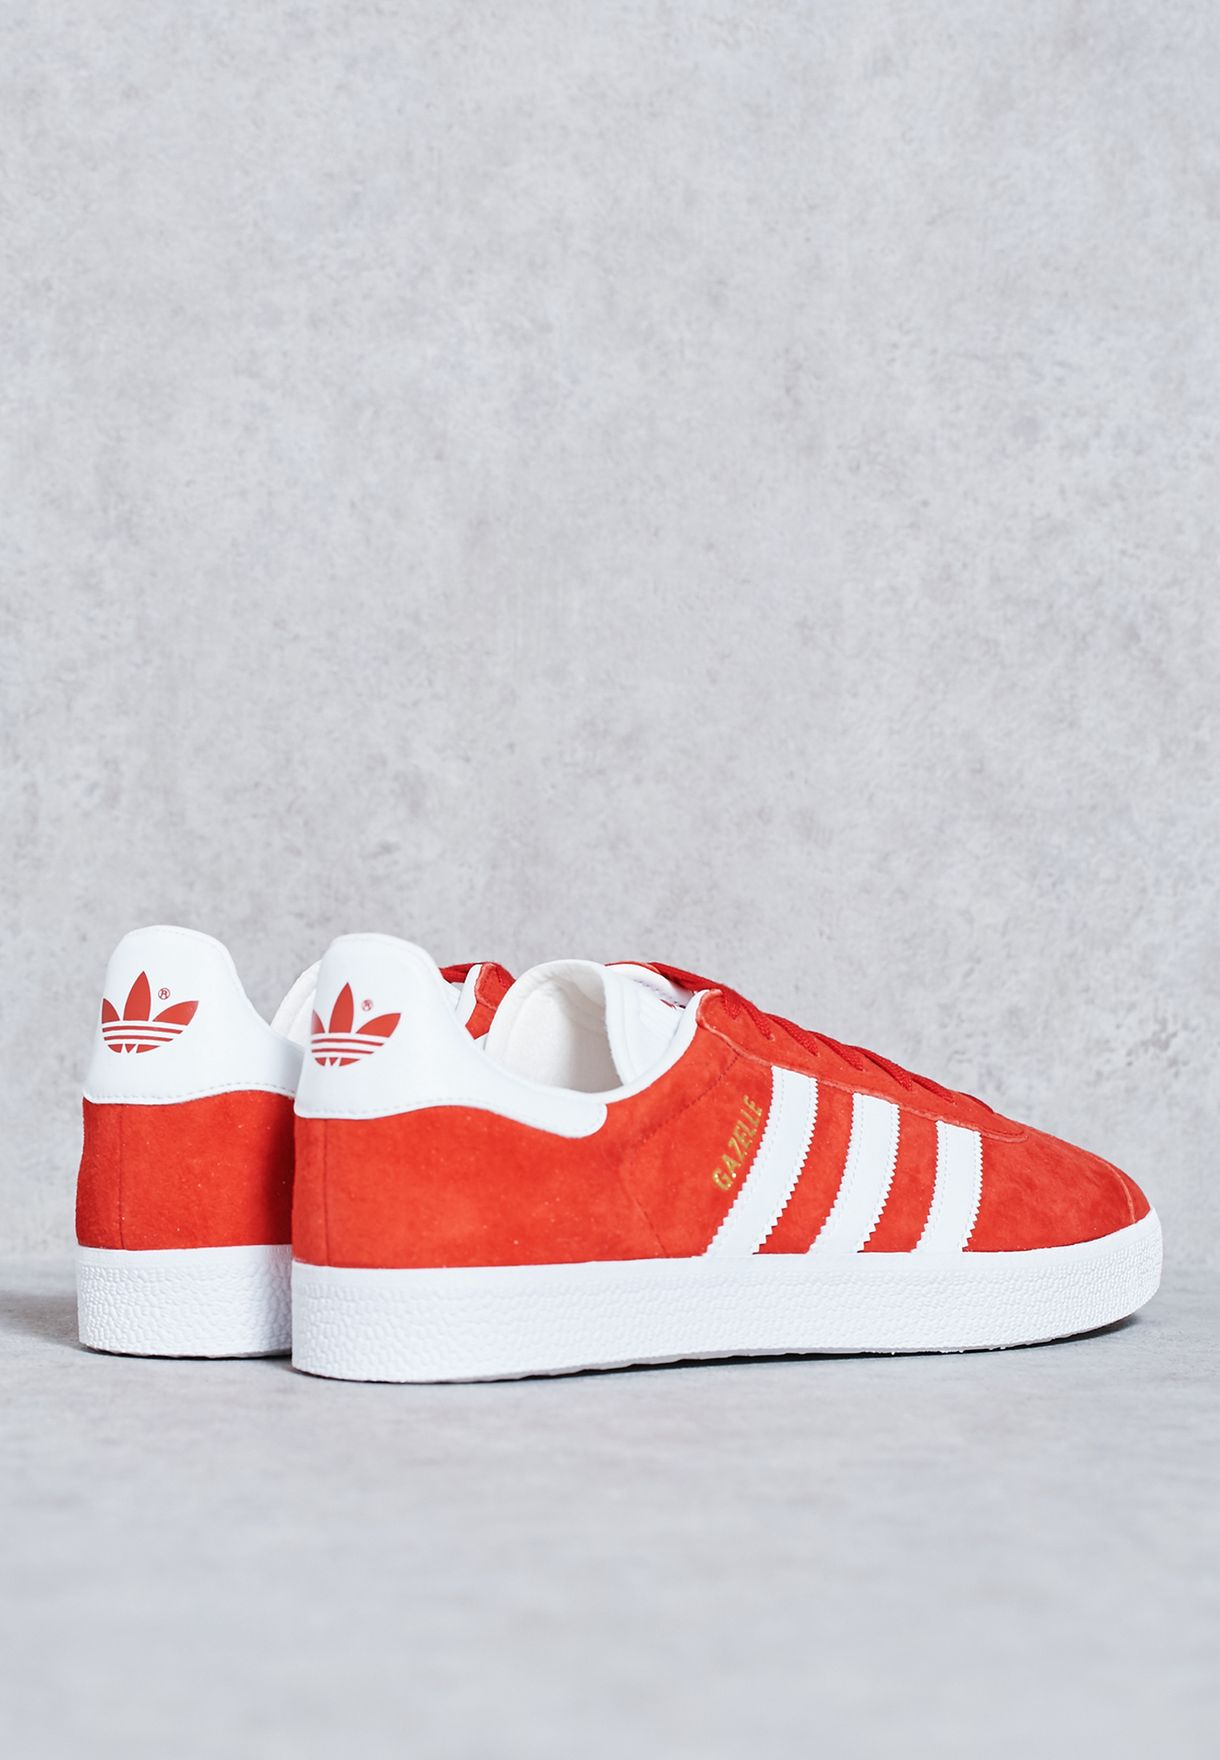 info for b8c8b 06463 adidas Originals. Gazelle